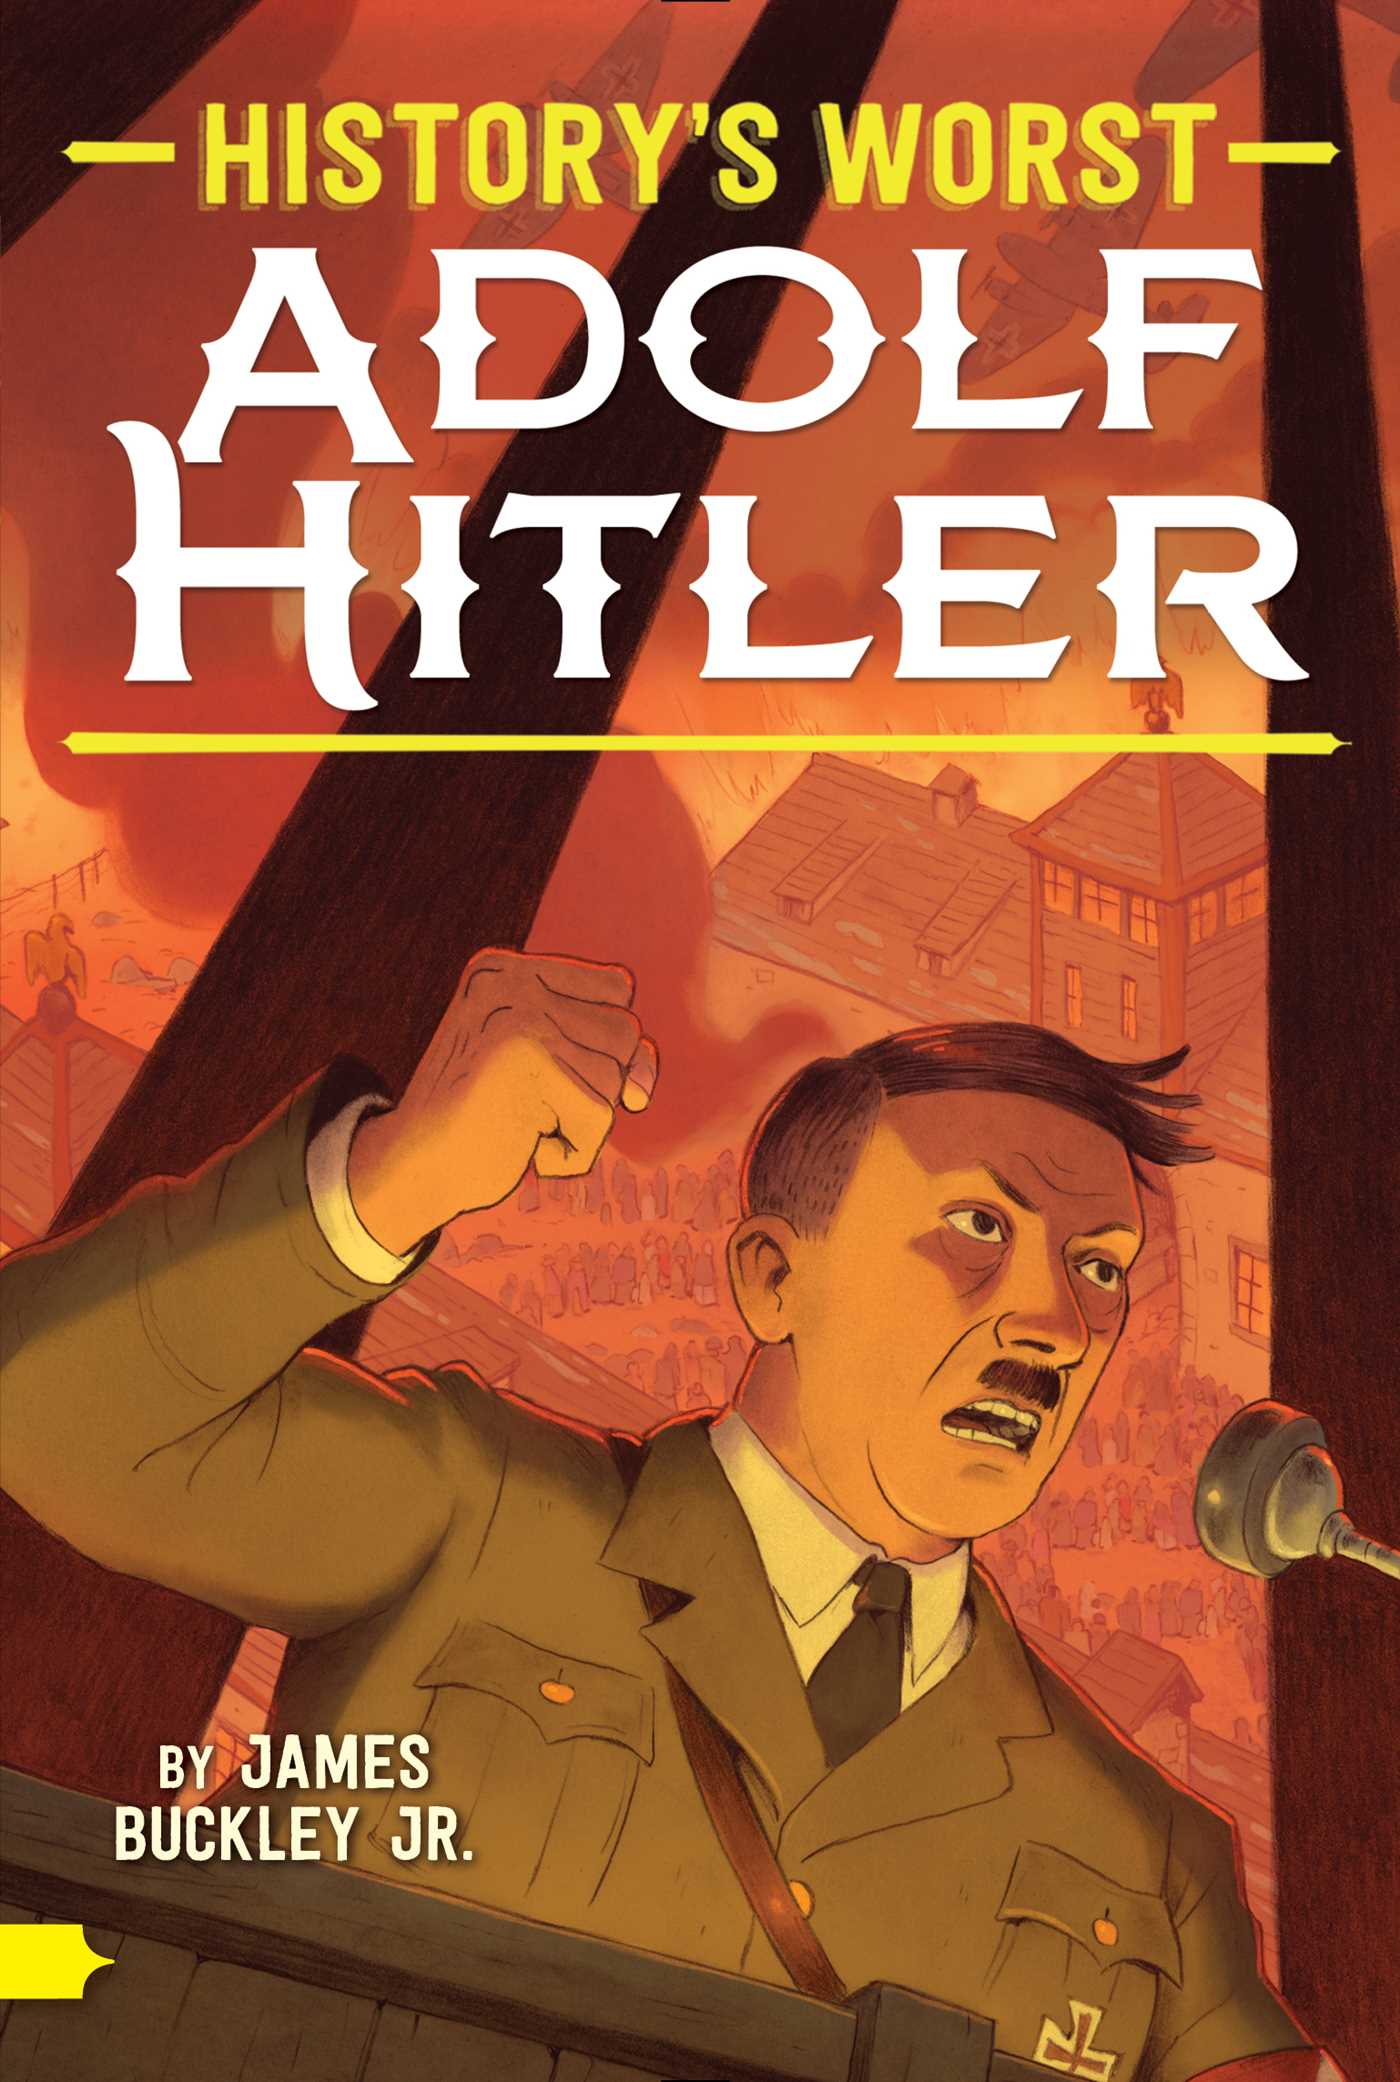 Adolf hitler 9781481479417 hr